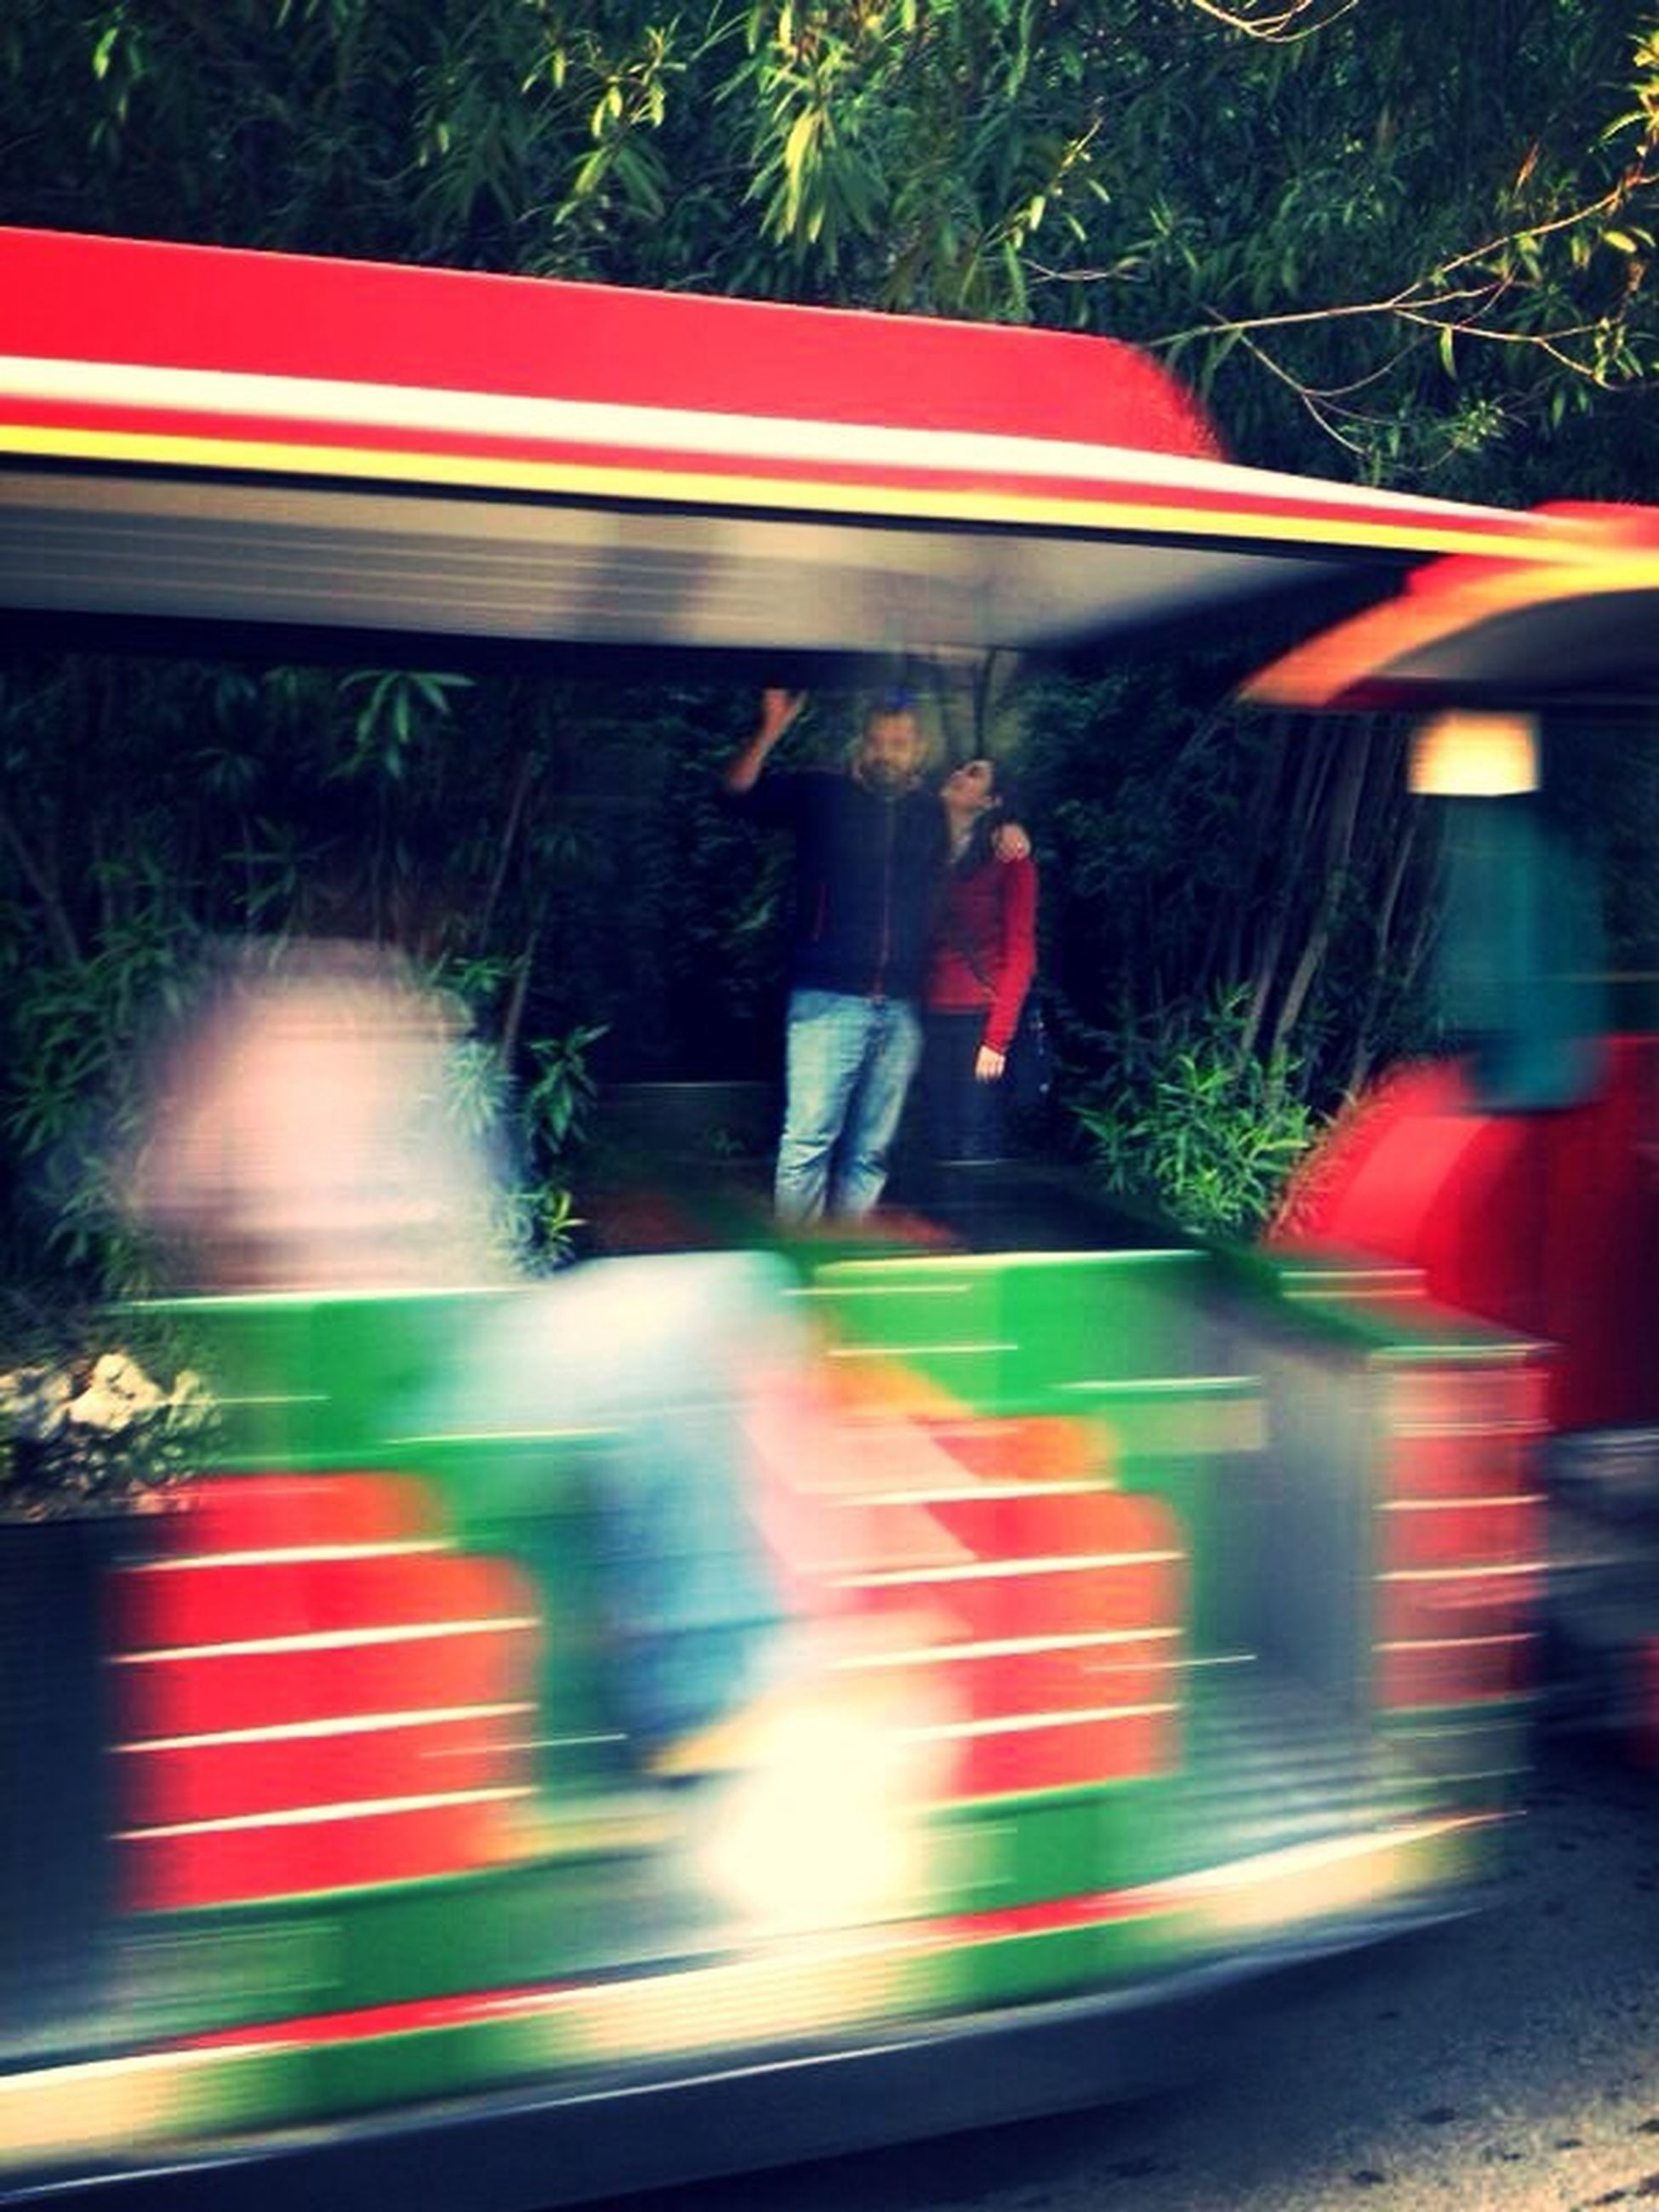 blurred motion, motion, transportation, speed, long exposure, on the move, road, mode of transport, land vehicle, street, light trail, multi colored, illuminated, lifestyles, men, red, car, travel